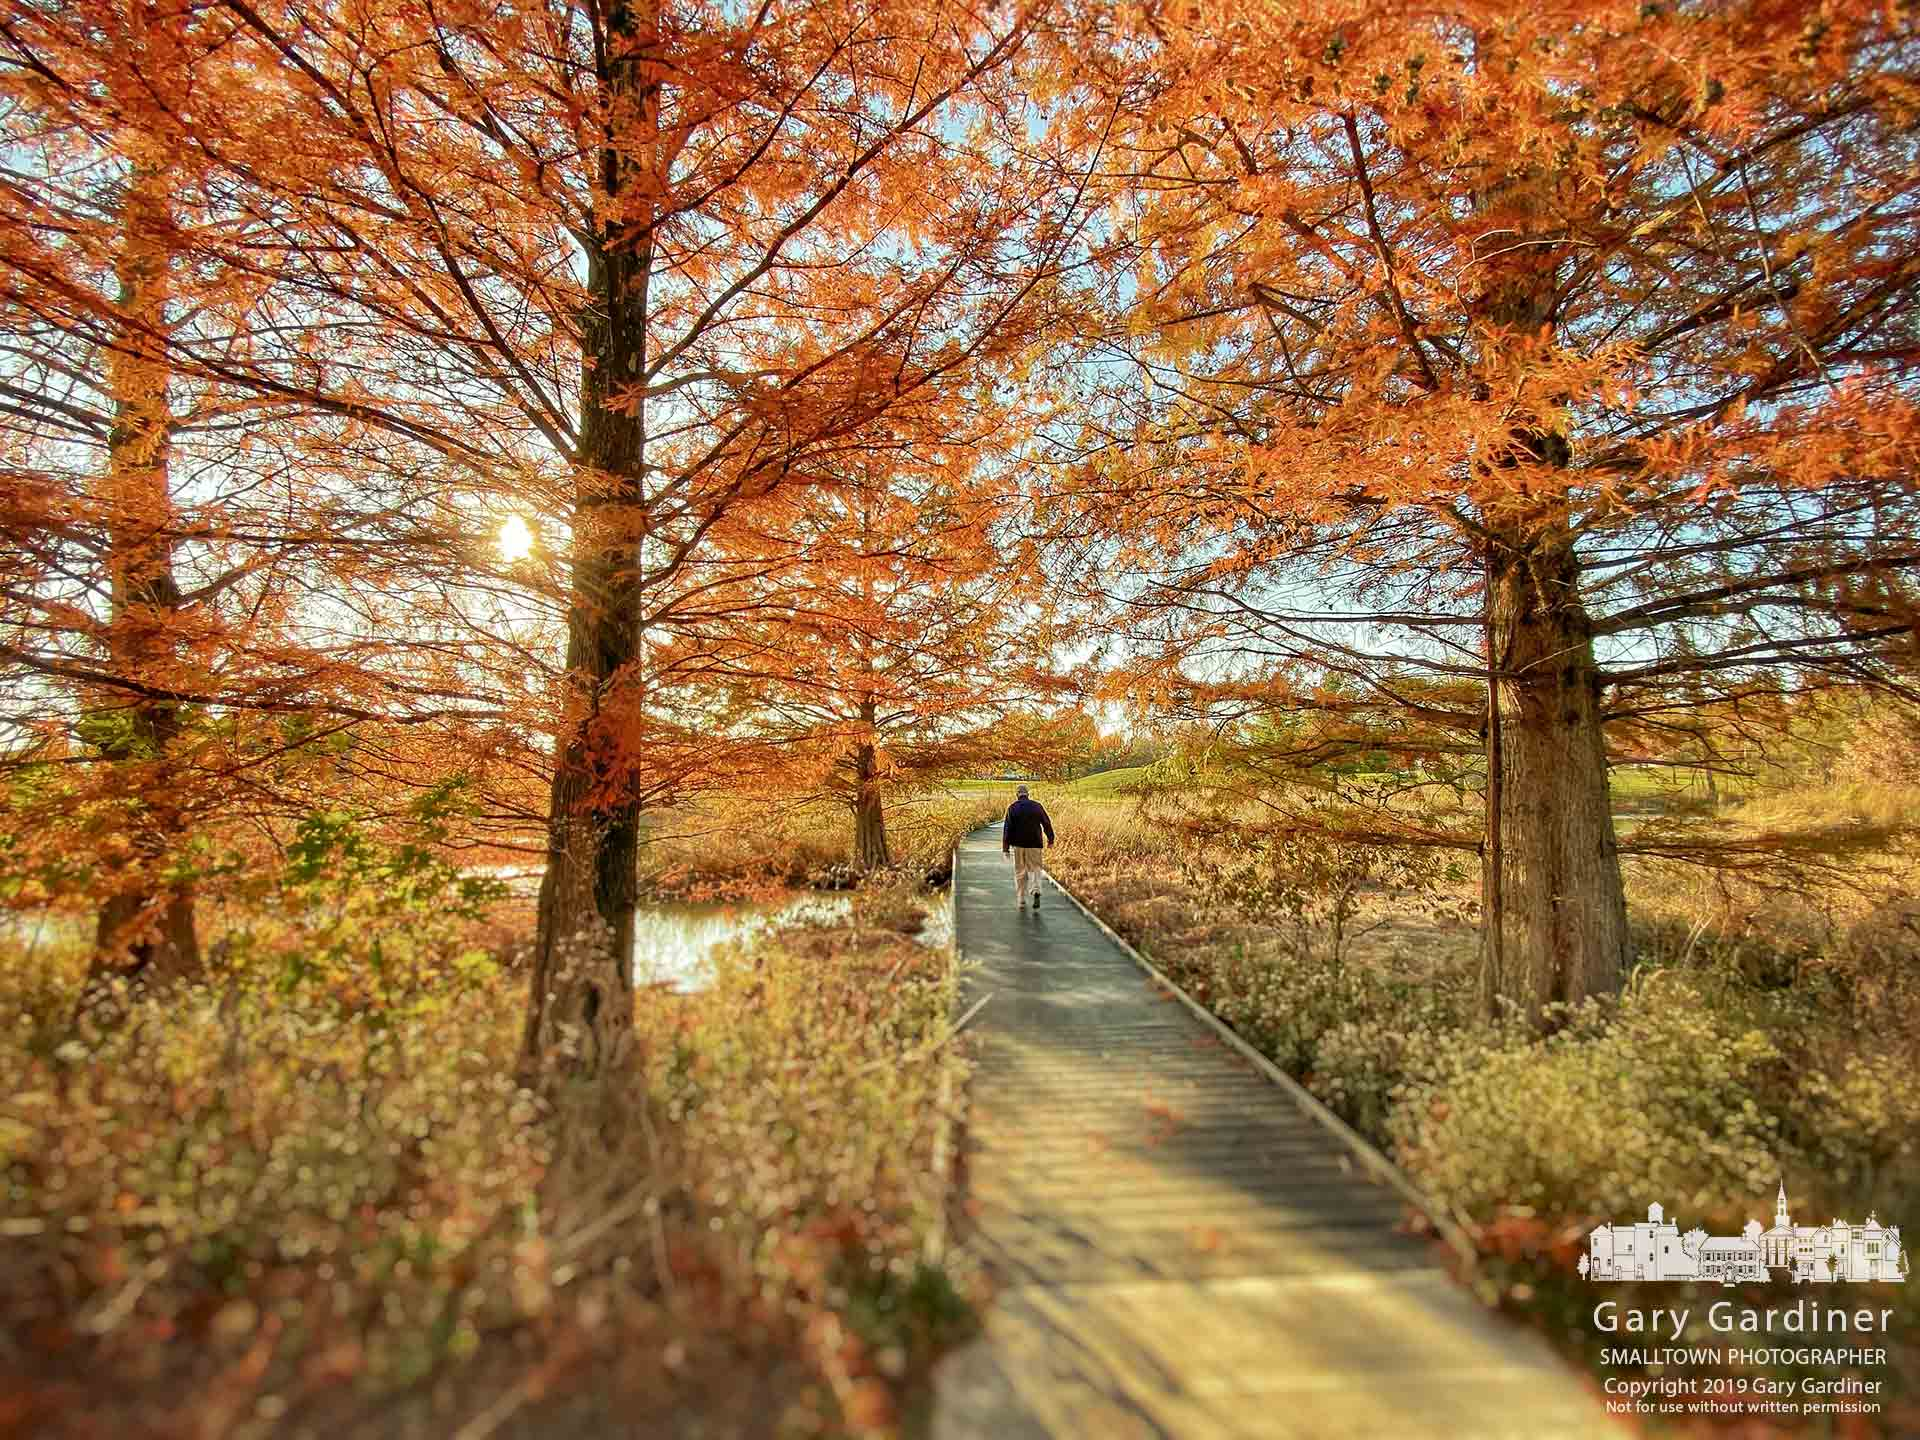 A man walks across the boardwalk across the wetlands at Highlands Park where the cypress trees flanking the path are the colors of fall. My Final Photo for Nov. 4, 2019.